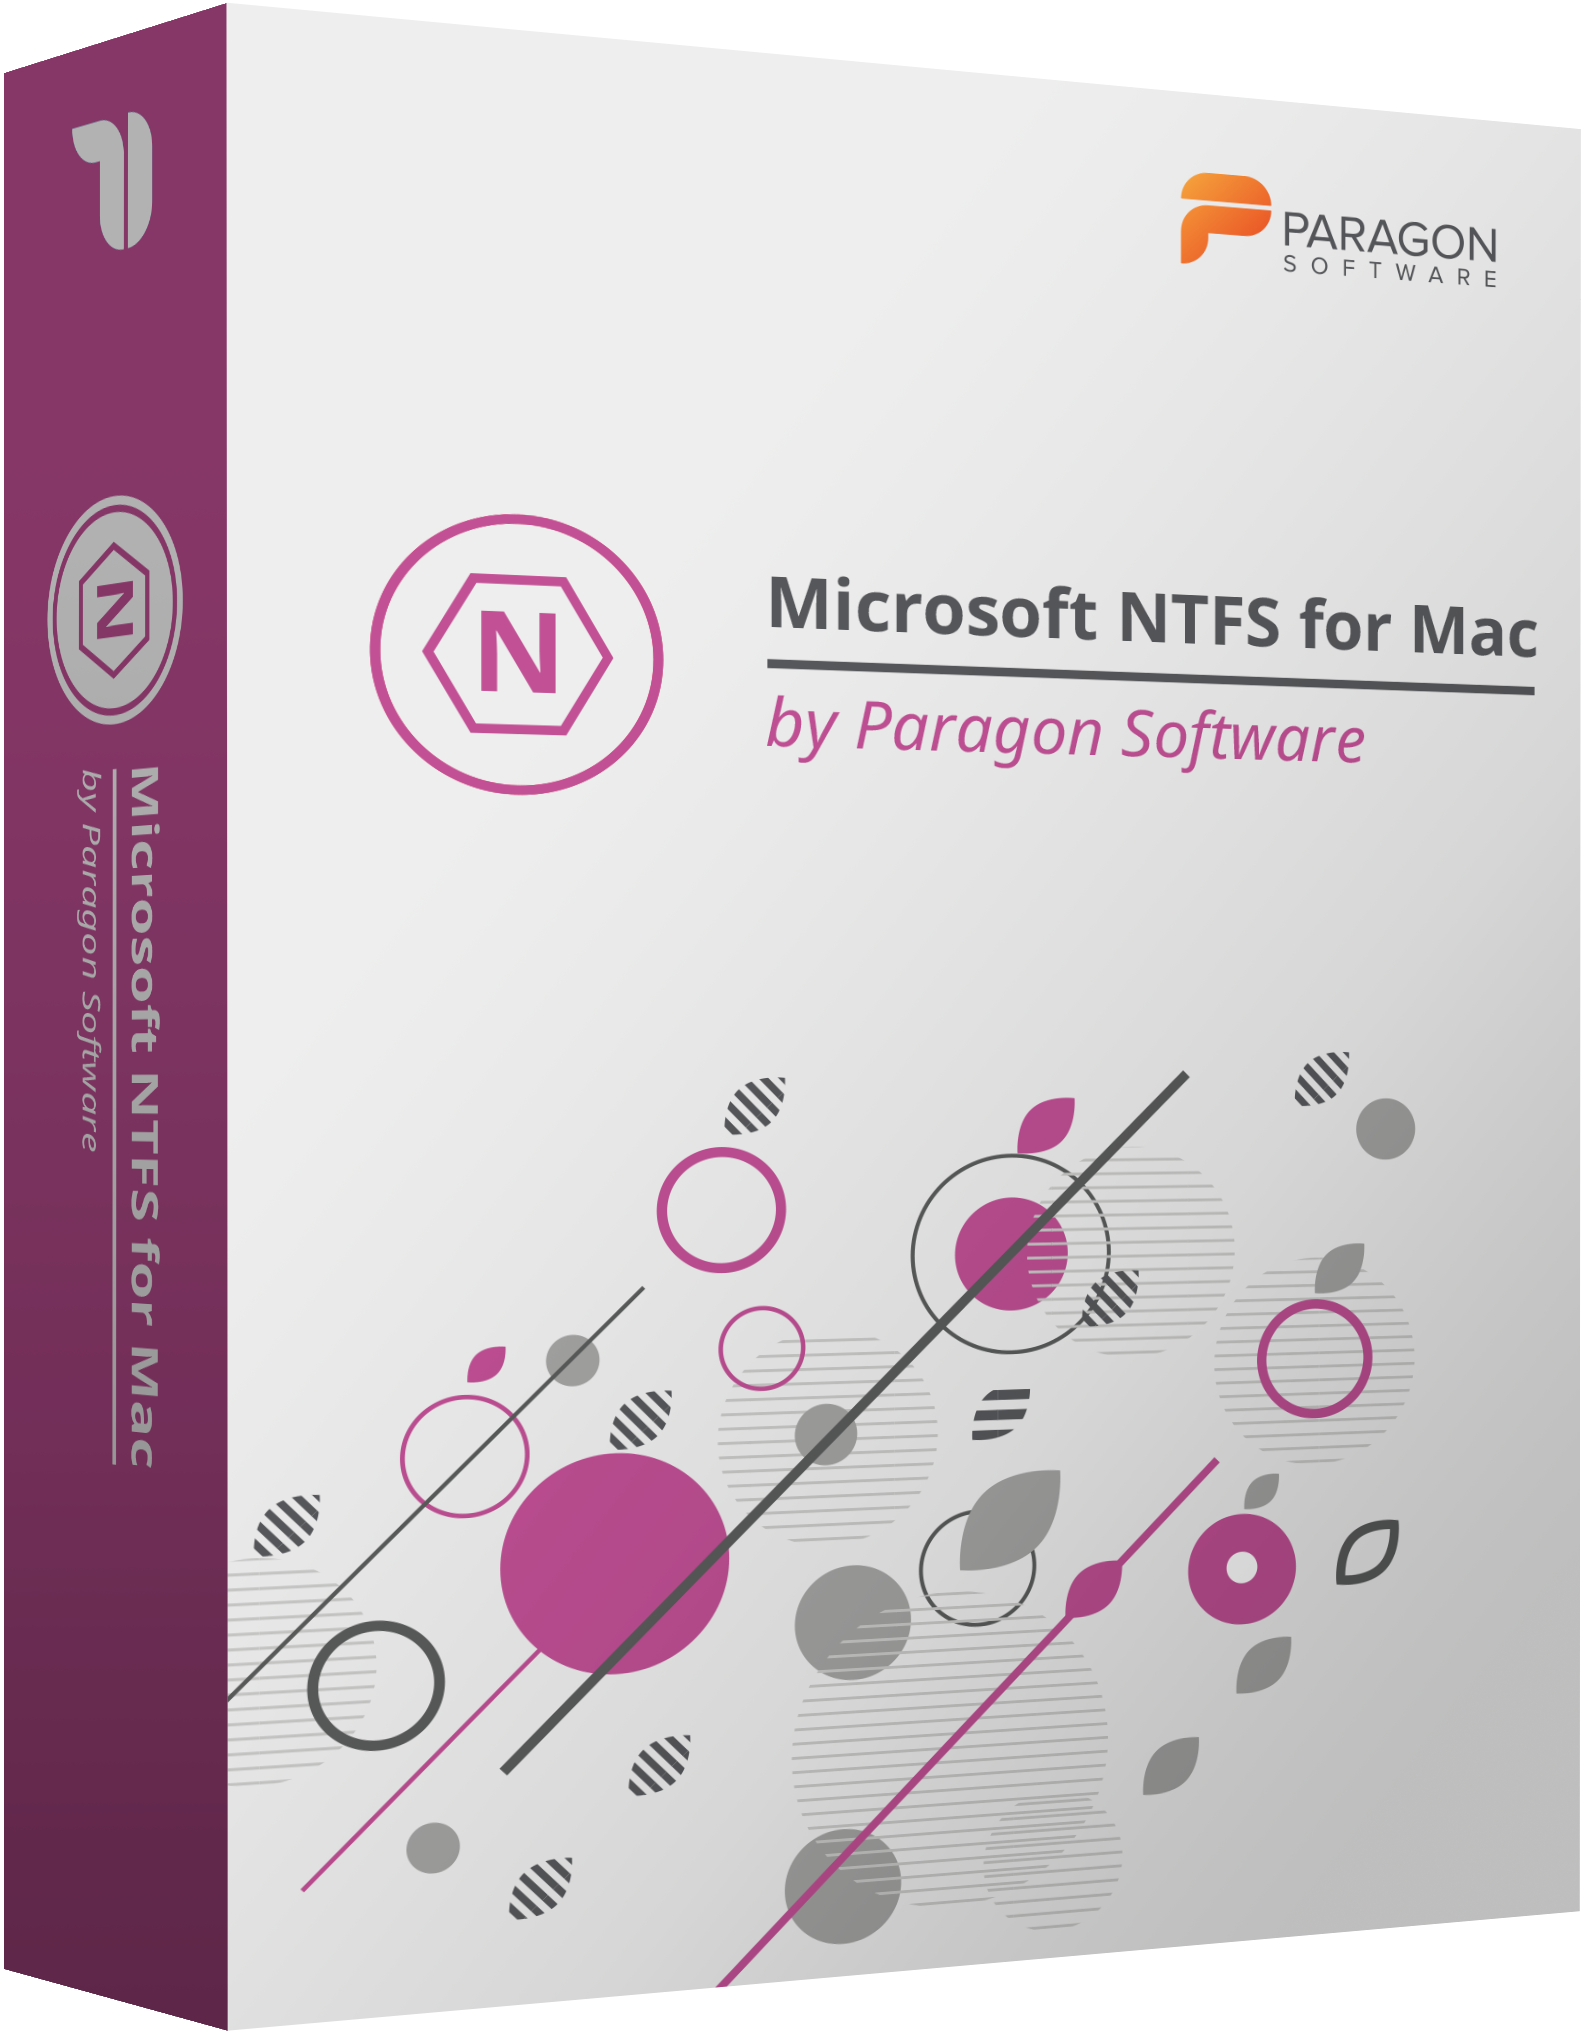 Cost Effective Paragon NTFS Software